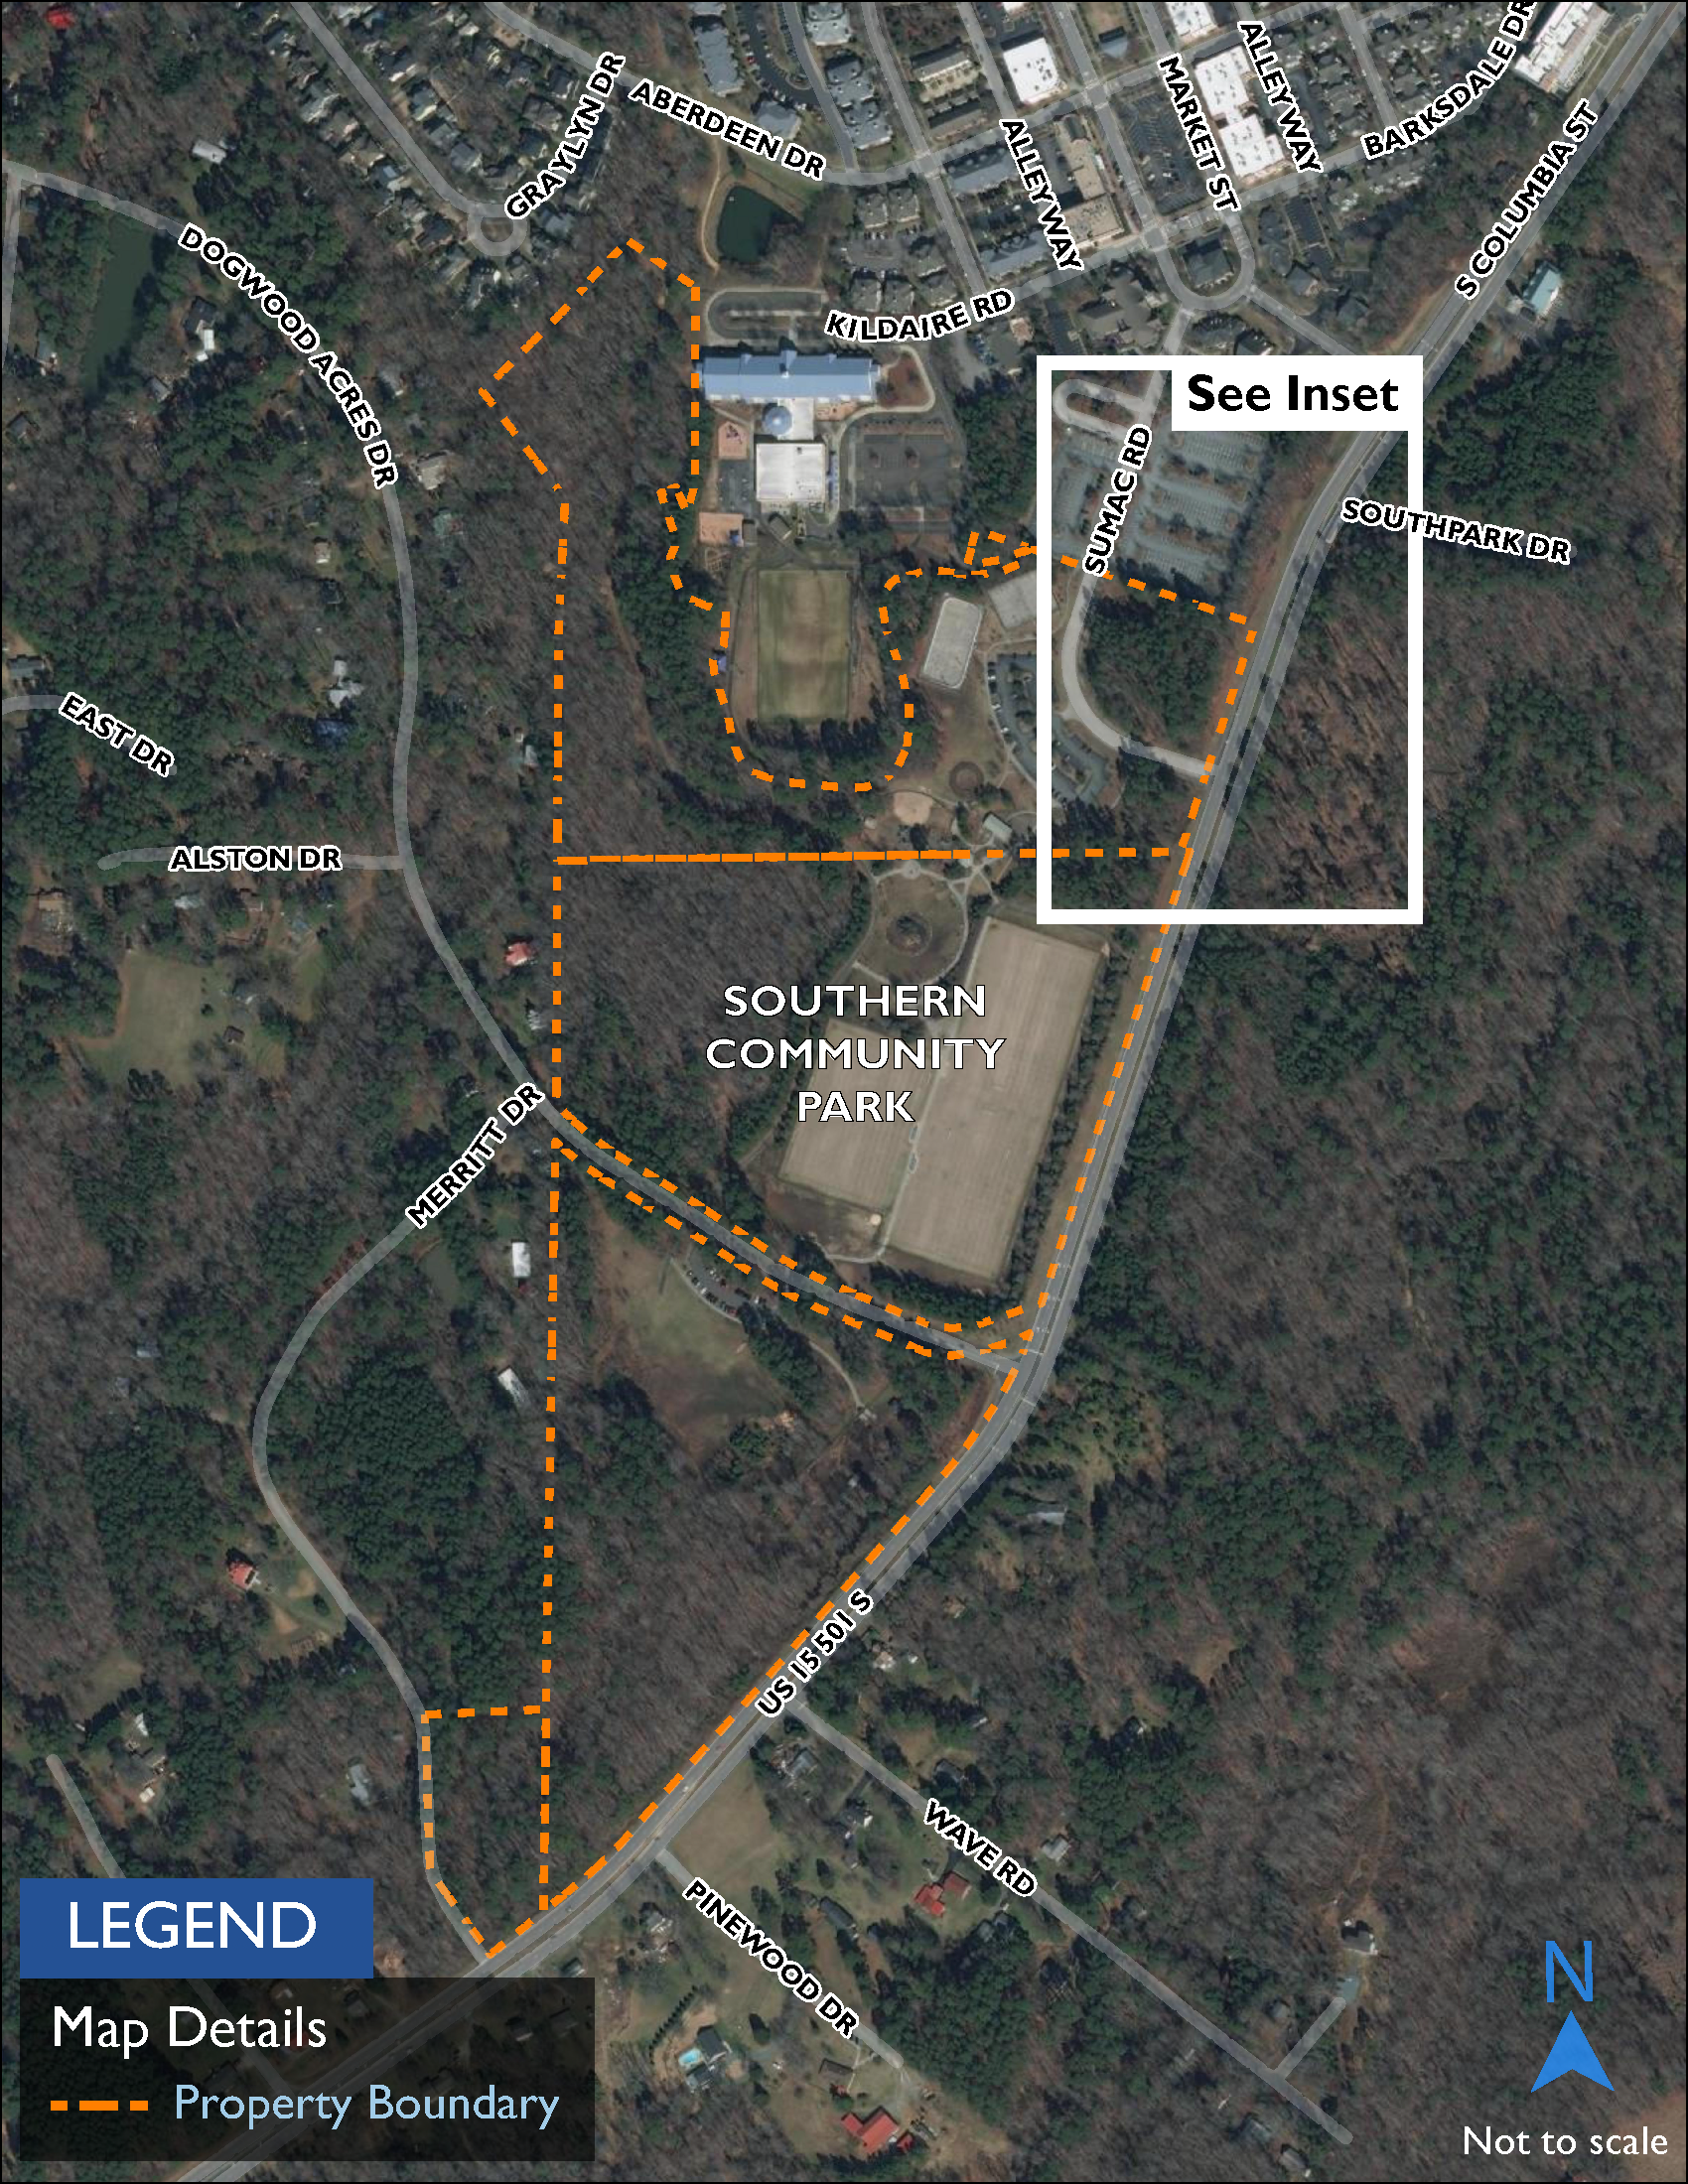 Map showing Southern Community Park, a 72-acre park located near the Southern Village Park-and-Ride.